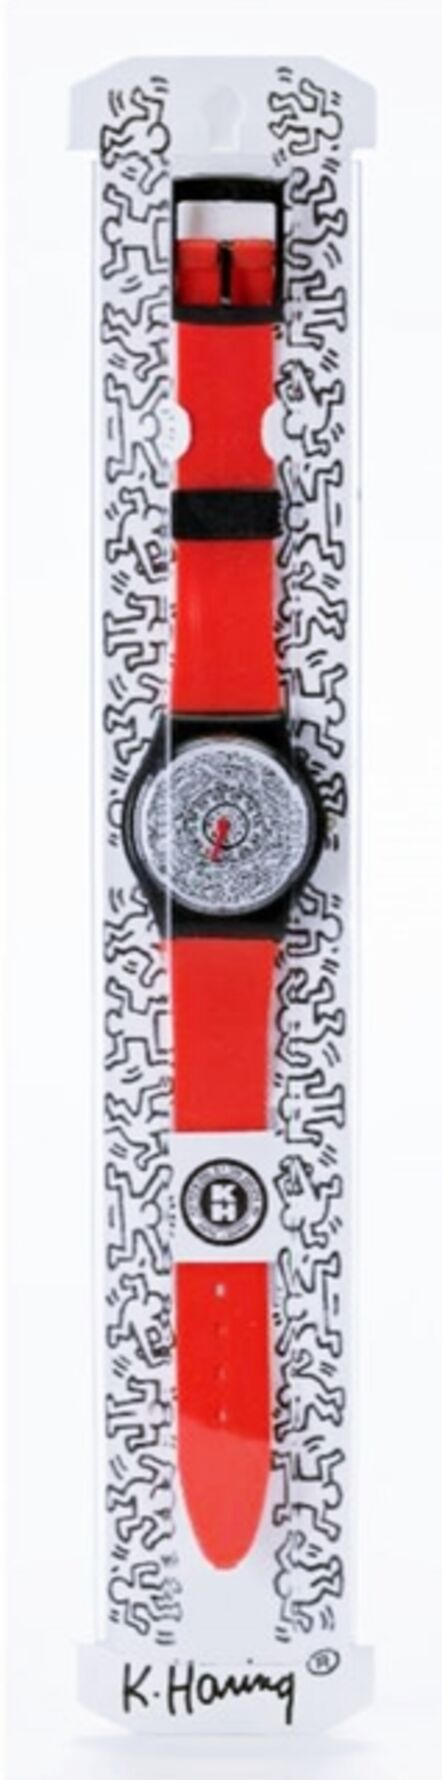 Keith Haring, 'Keith Haring Running Time Wrist Watch (Red)', ca. 1992